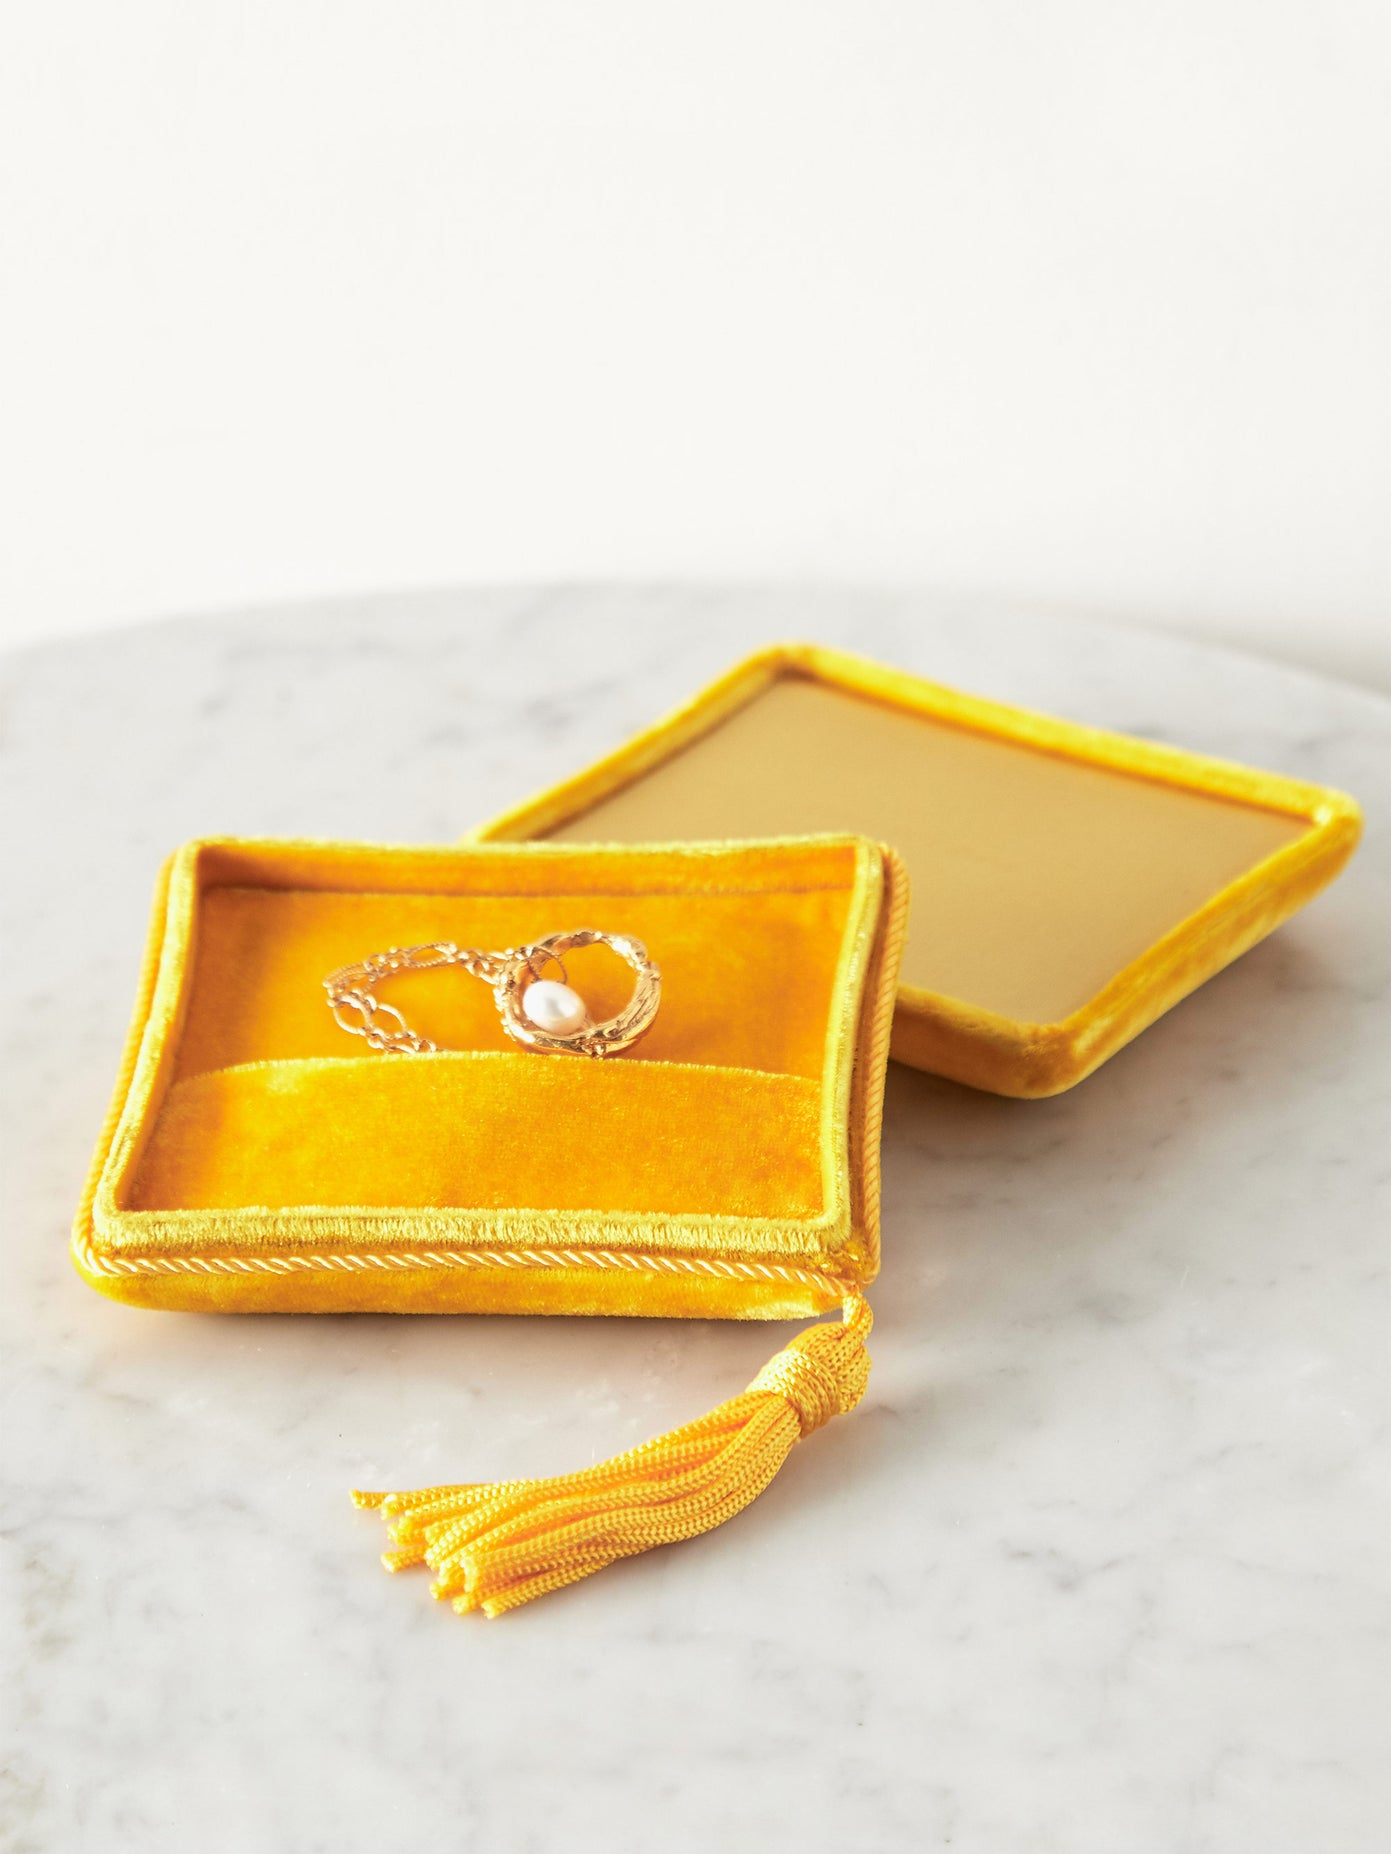 Sophie Bille Brahe Yellow Velvet Jewellery Box